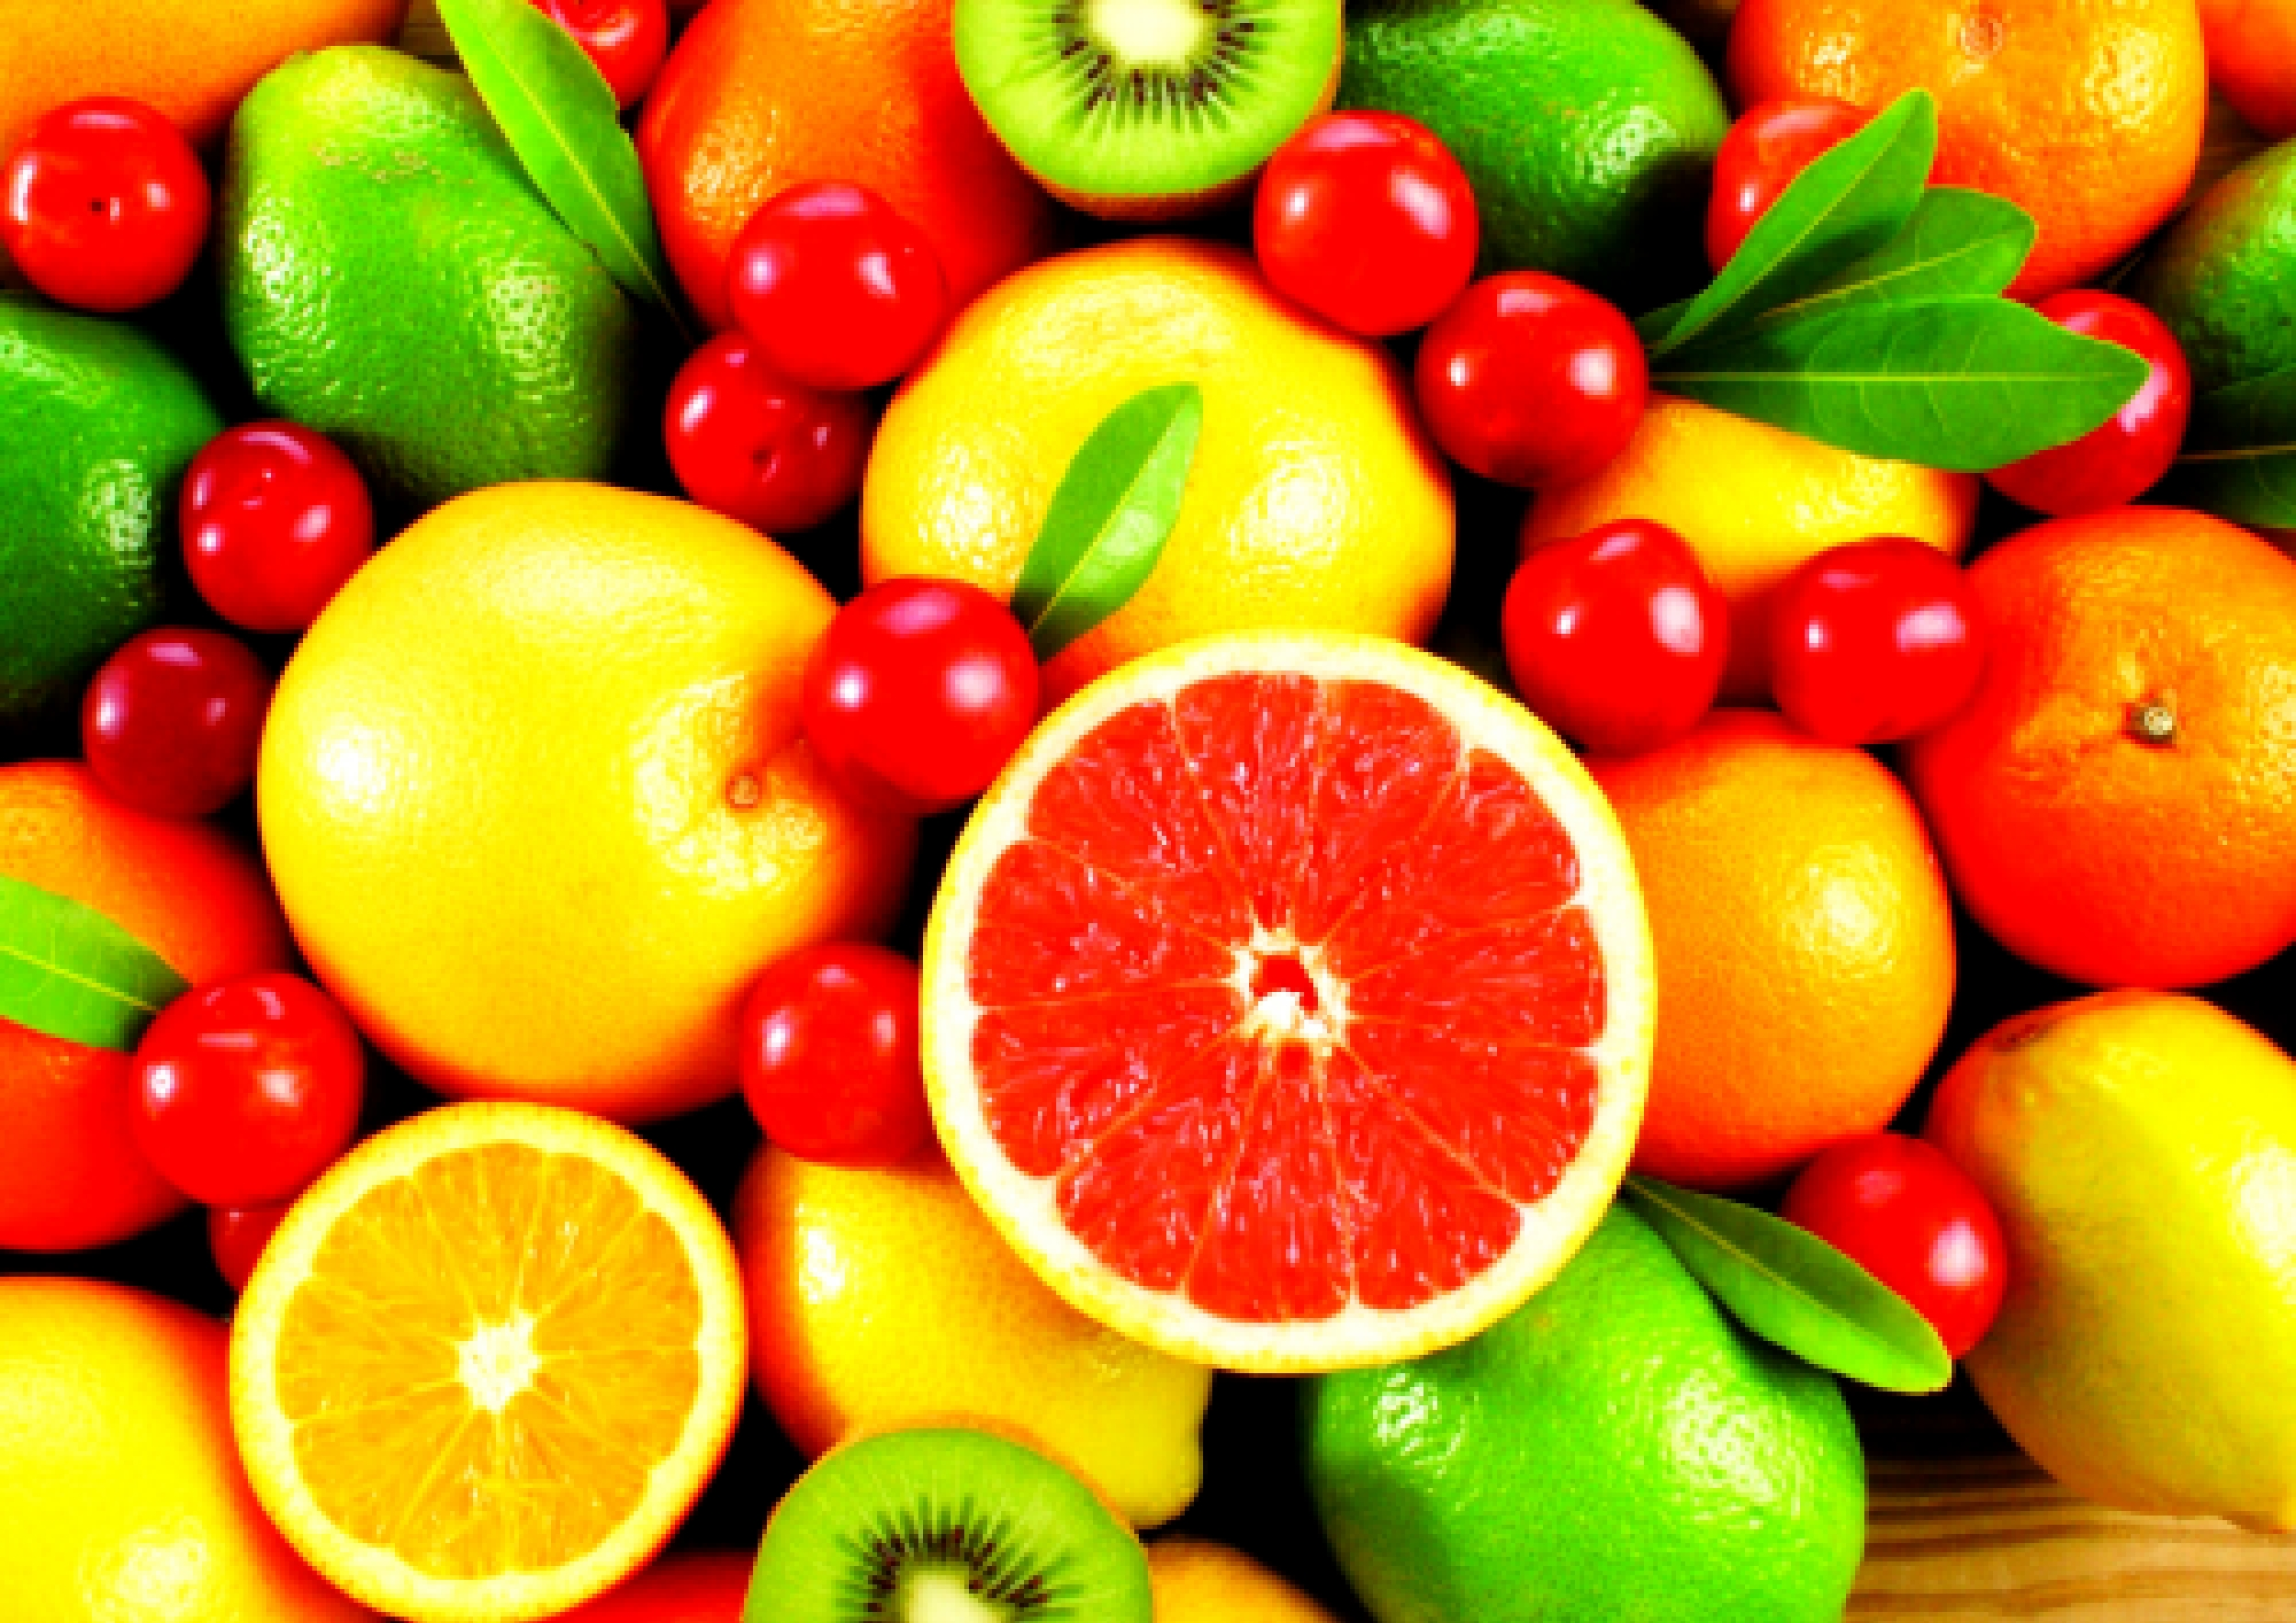 Fruits and vegetables 2500 x 1767 download close